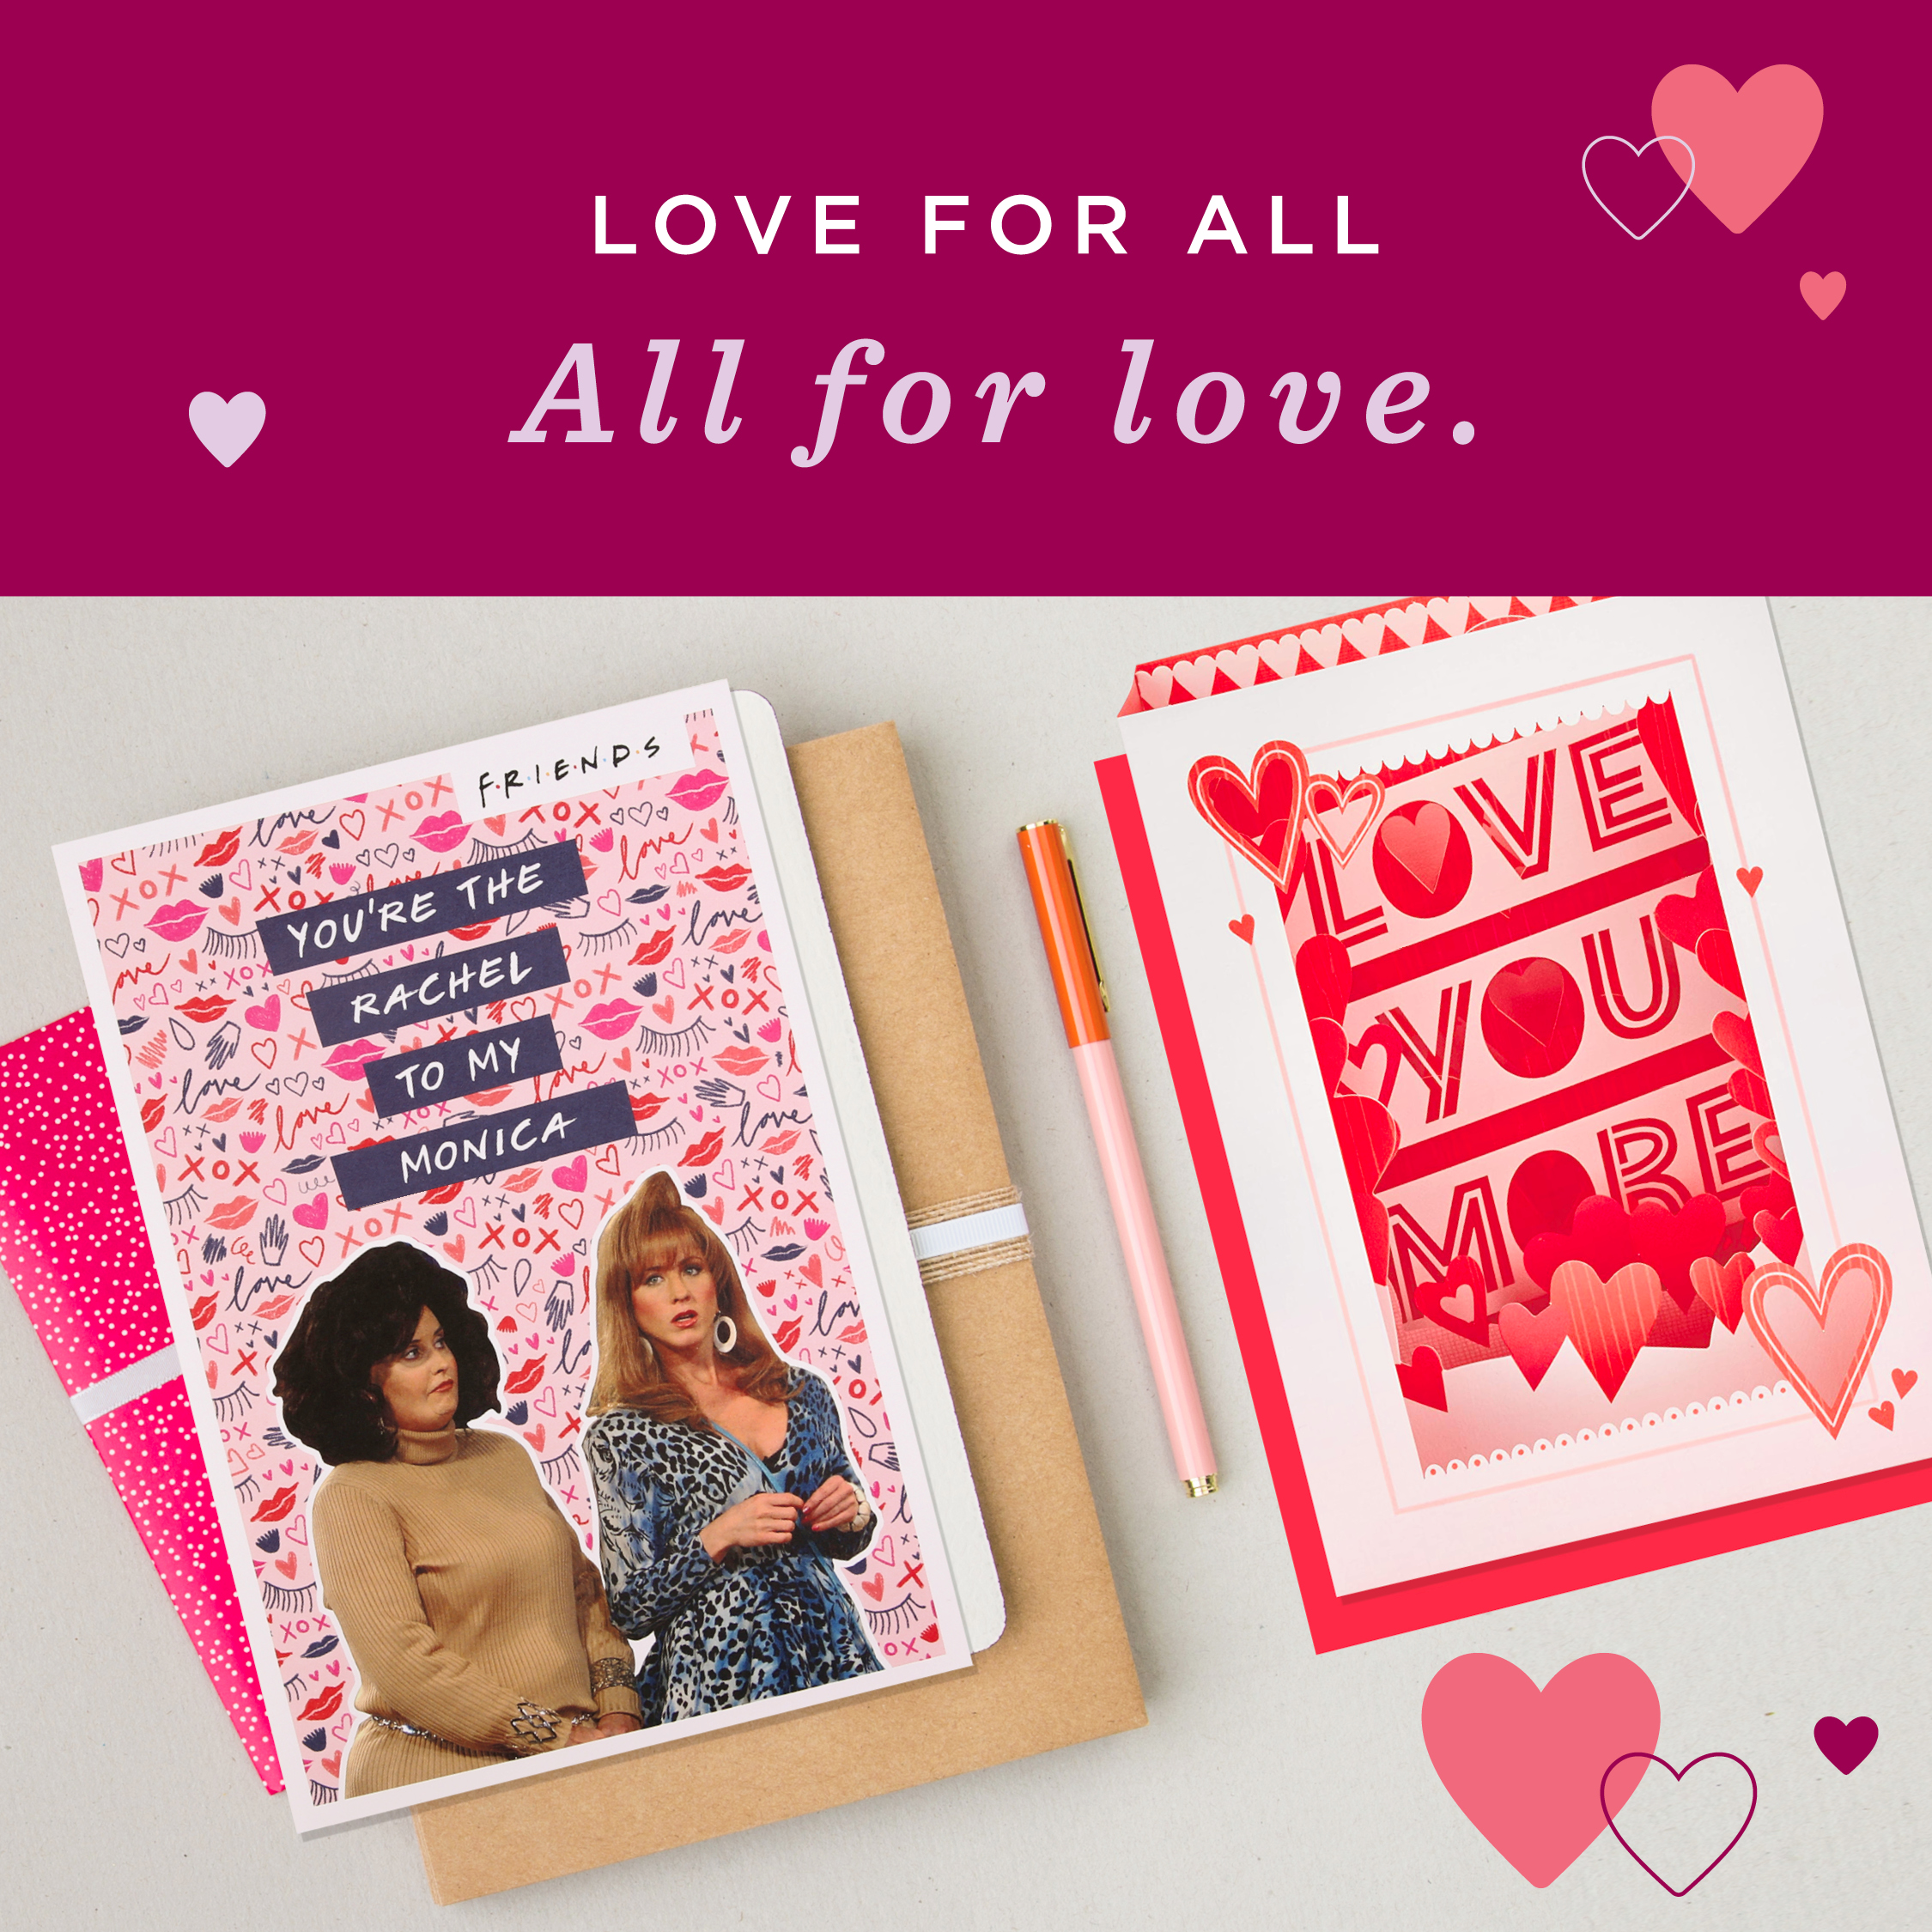 Above: Hallmark has taken to social media channels with its 'Love for all, all for love' Valentine's activity. There's also an insert going in each order from Hallmark.co.uk talking about lockdown love with fun ideas of how to share love including self-care.